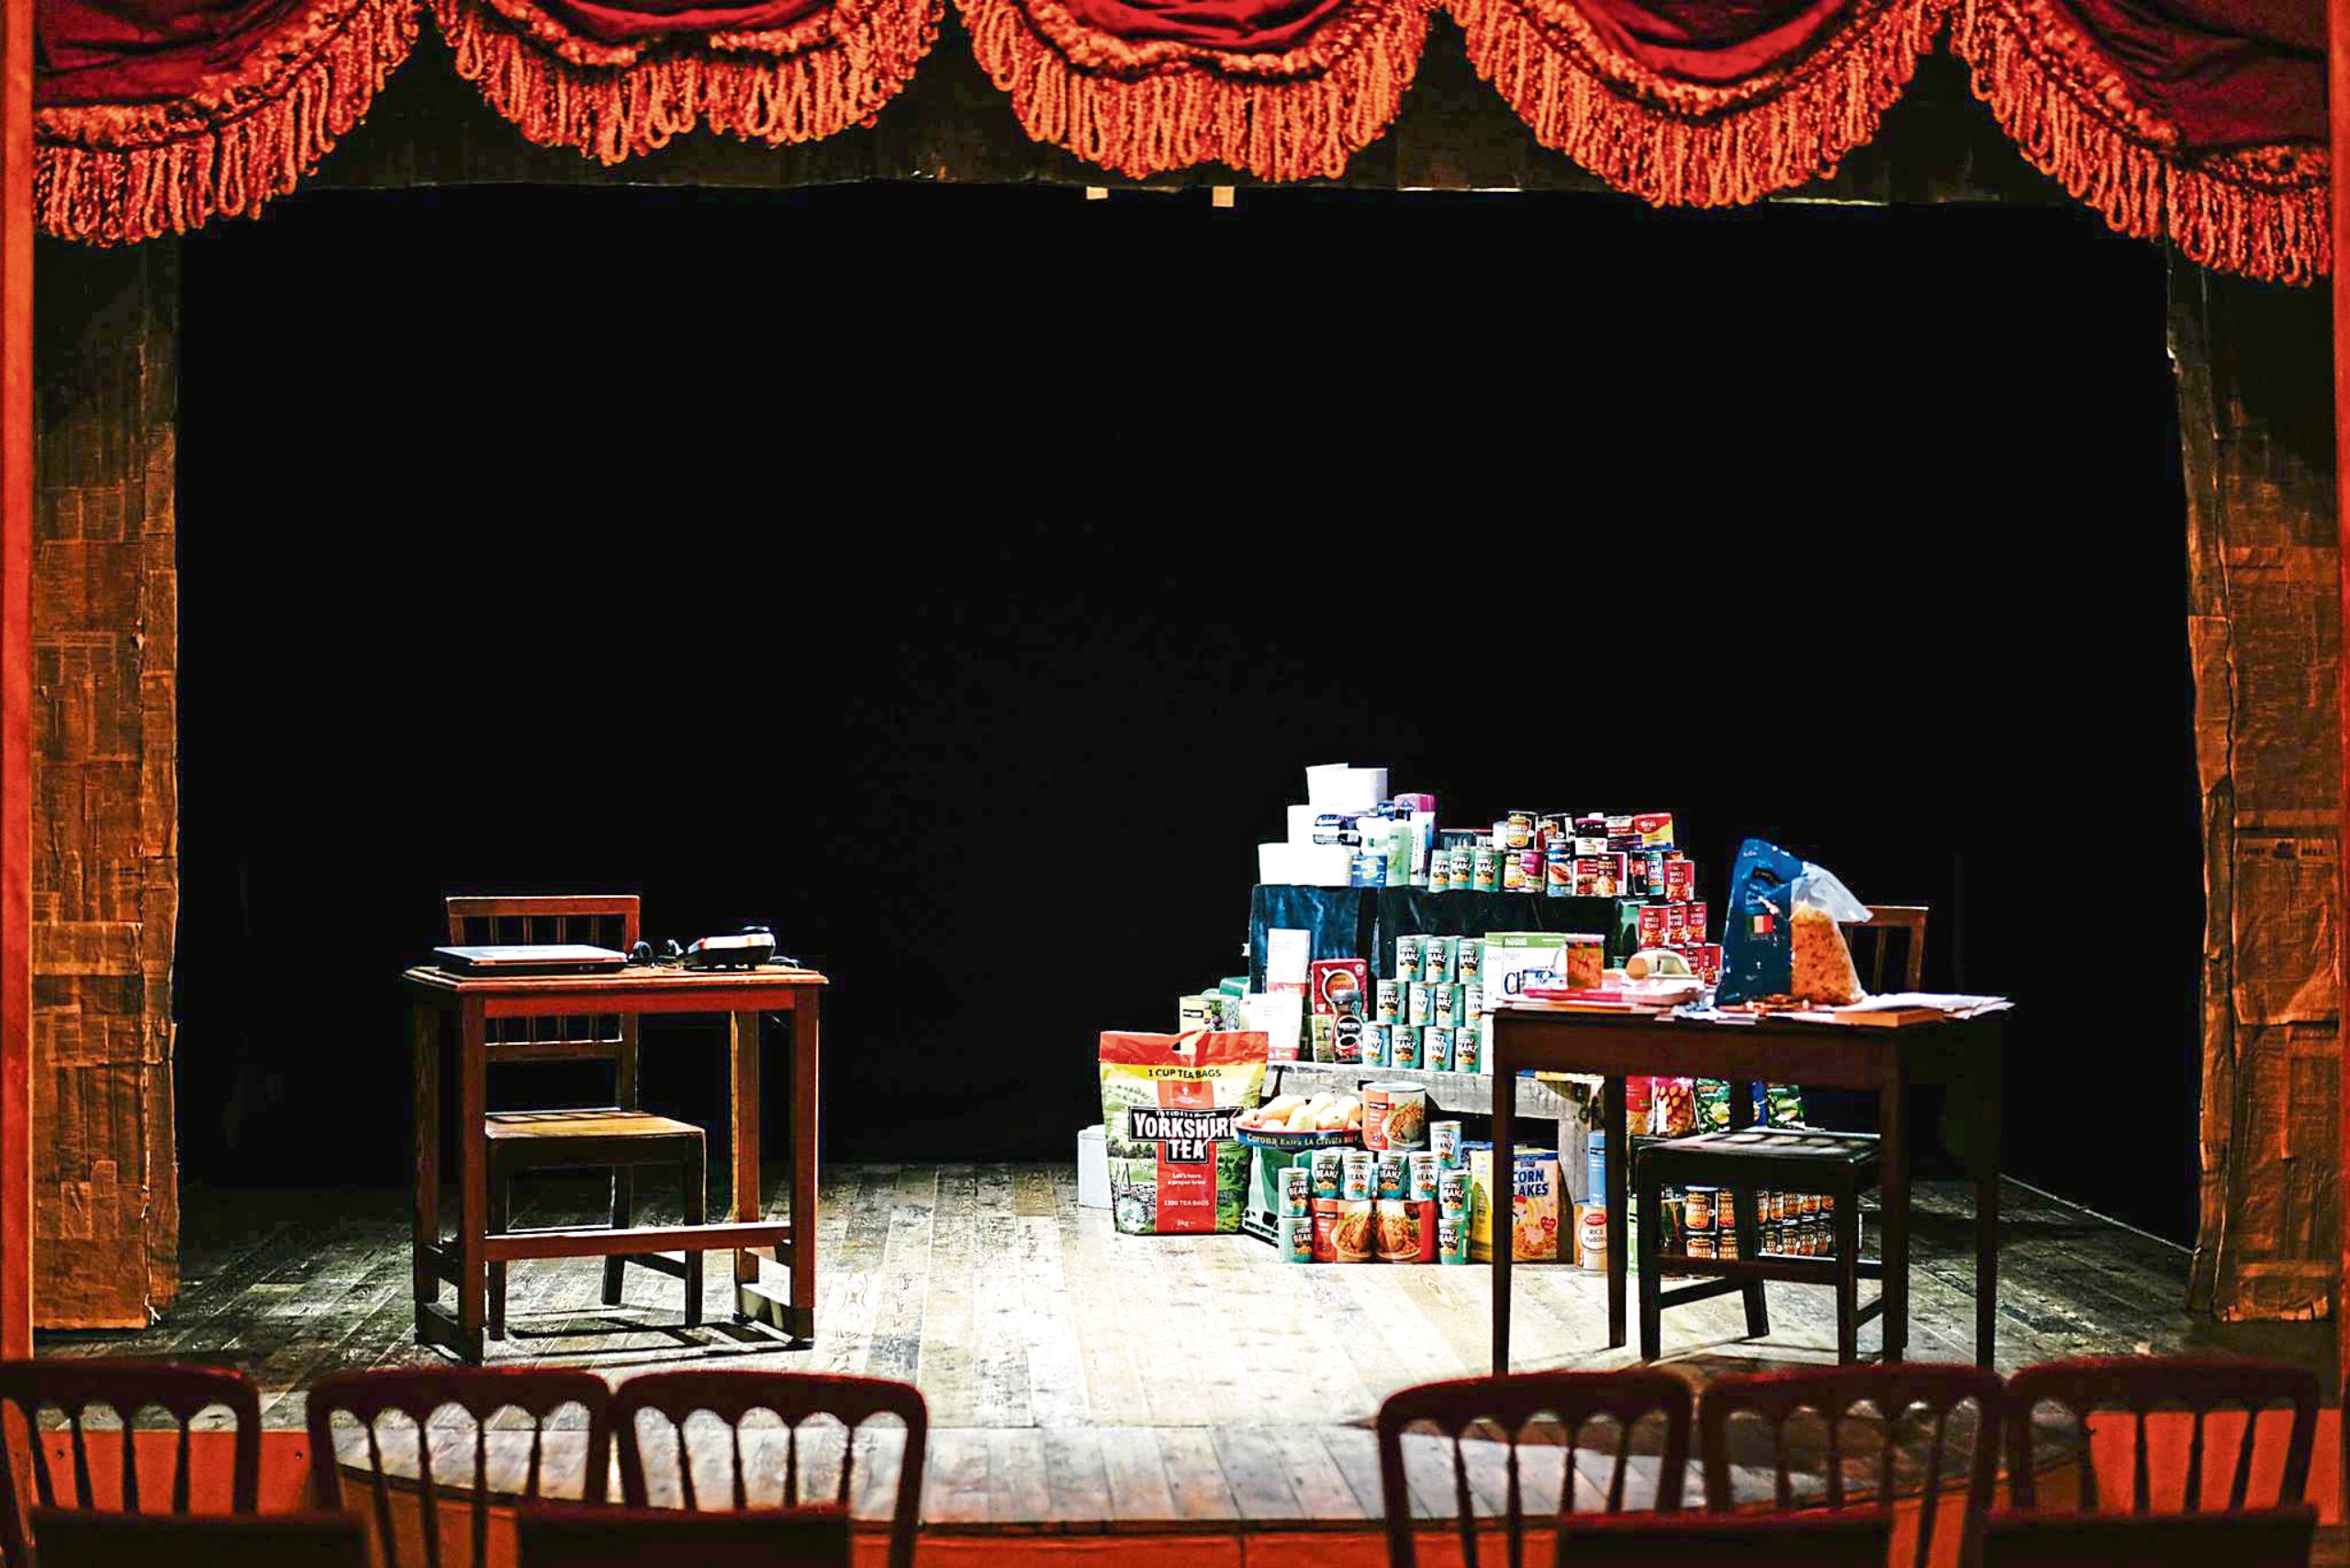 The stage is set for Food Bank As It Is